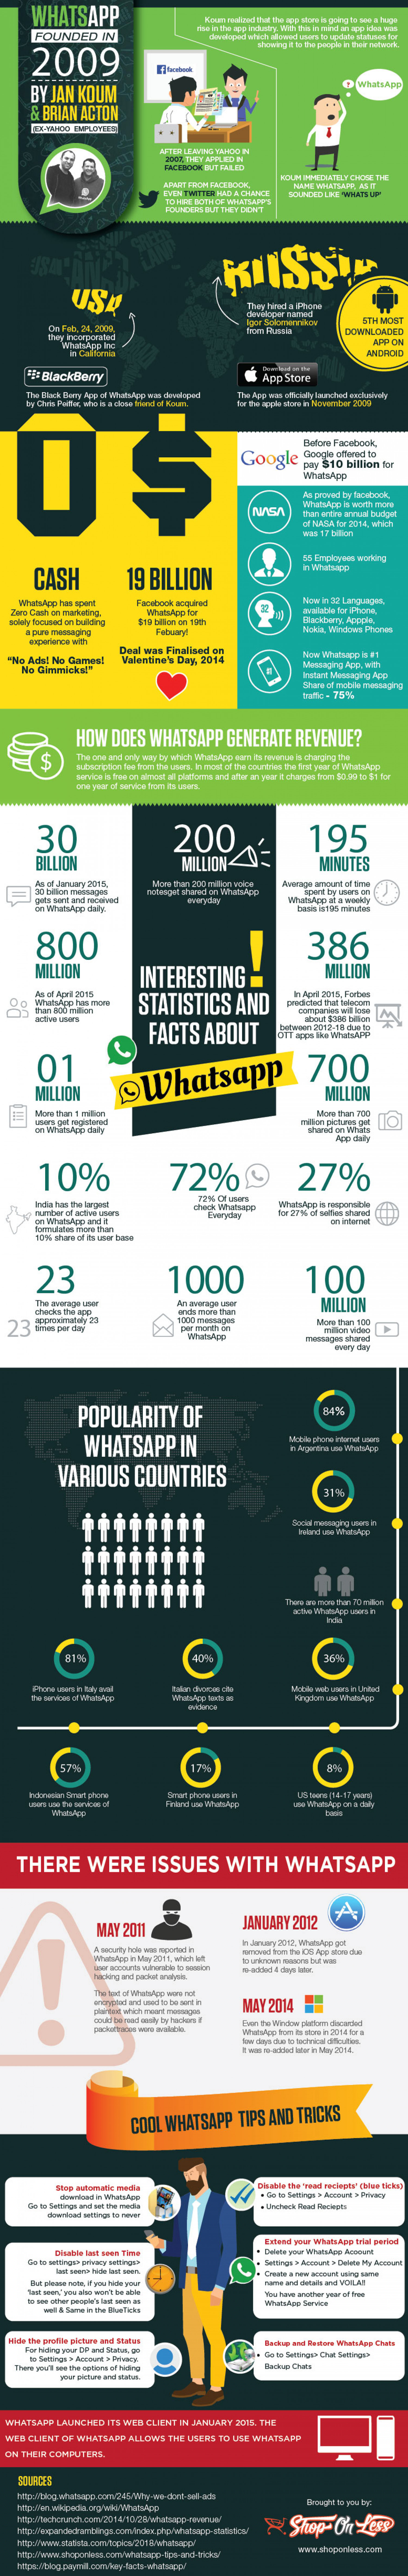 40+ Freaky Facts & Stats about Whatsapp Infographic